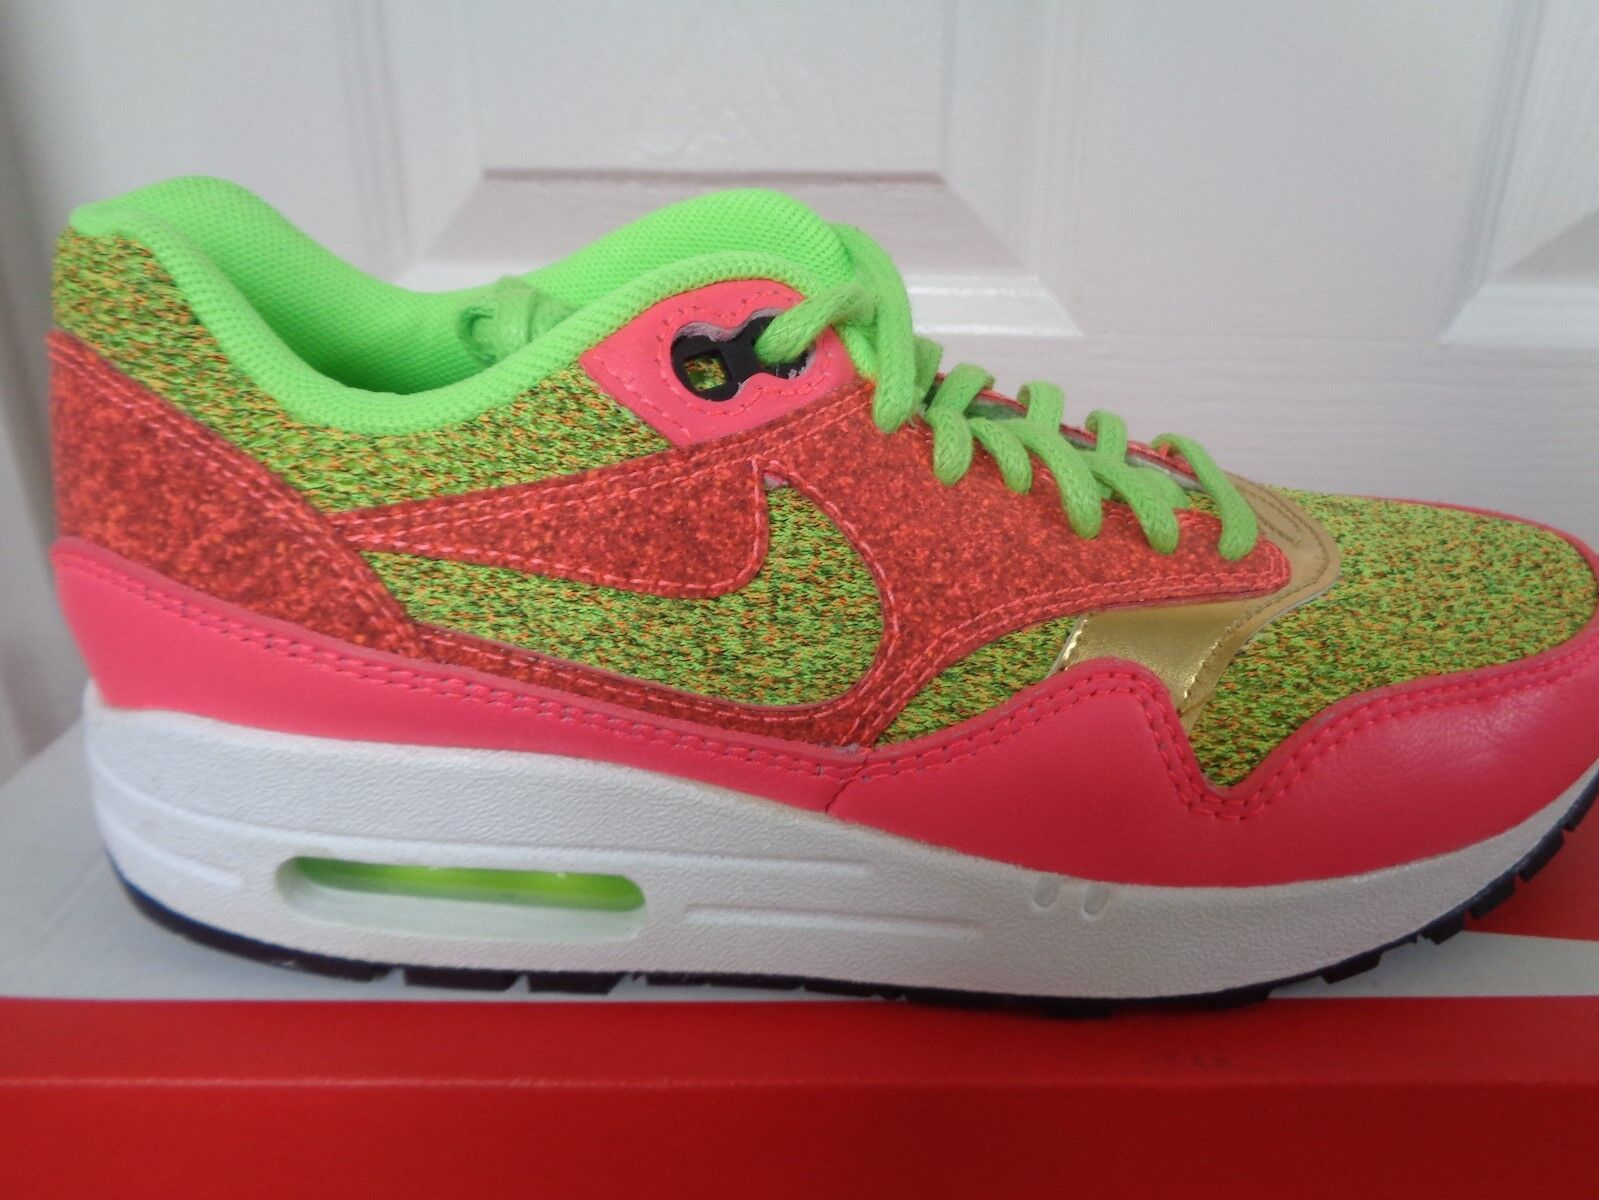 Nike Air Max 1 SE Femme trainers chaussures 881101 300 uk 3.5 eu 36.5 us 6 NEW+BOX